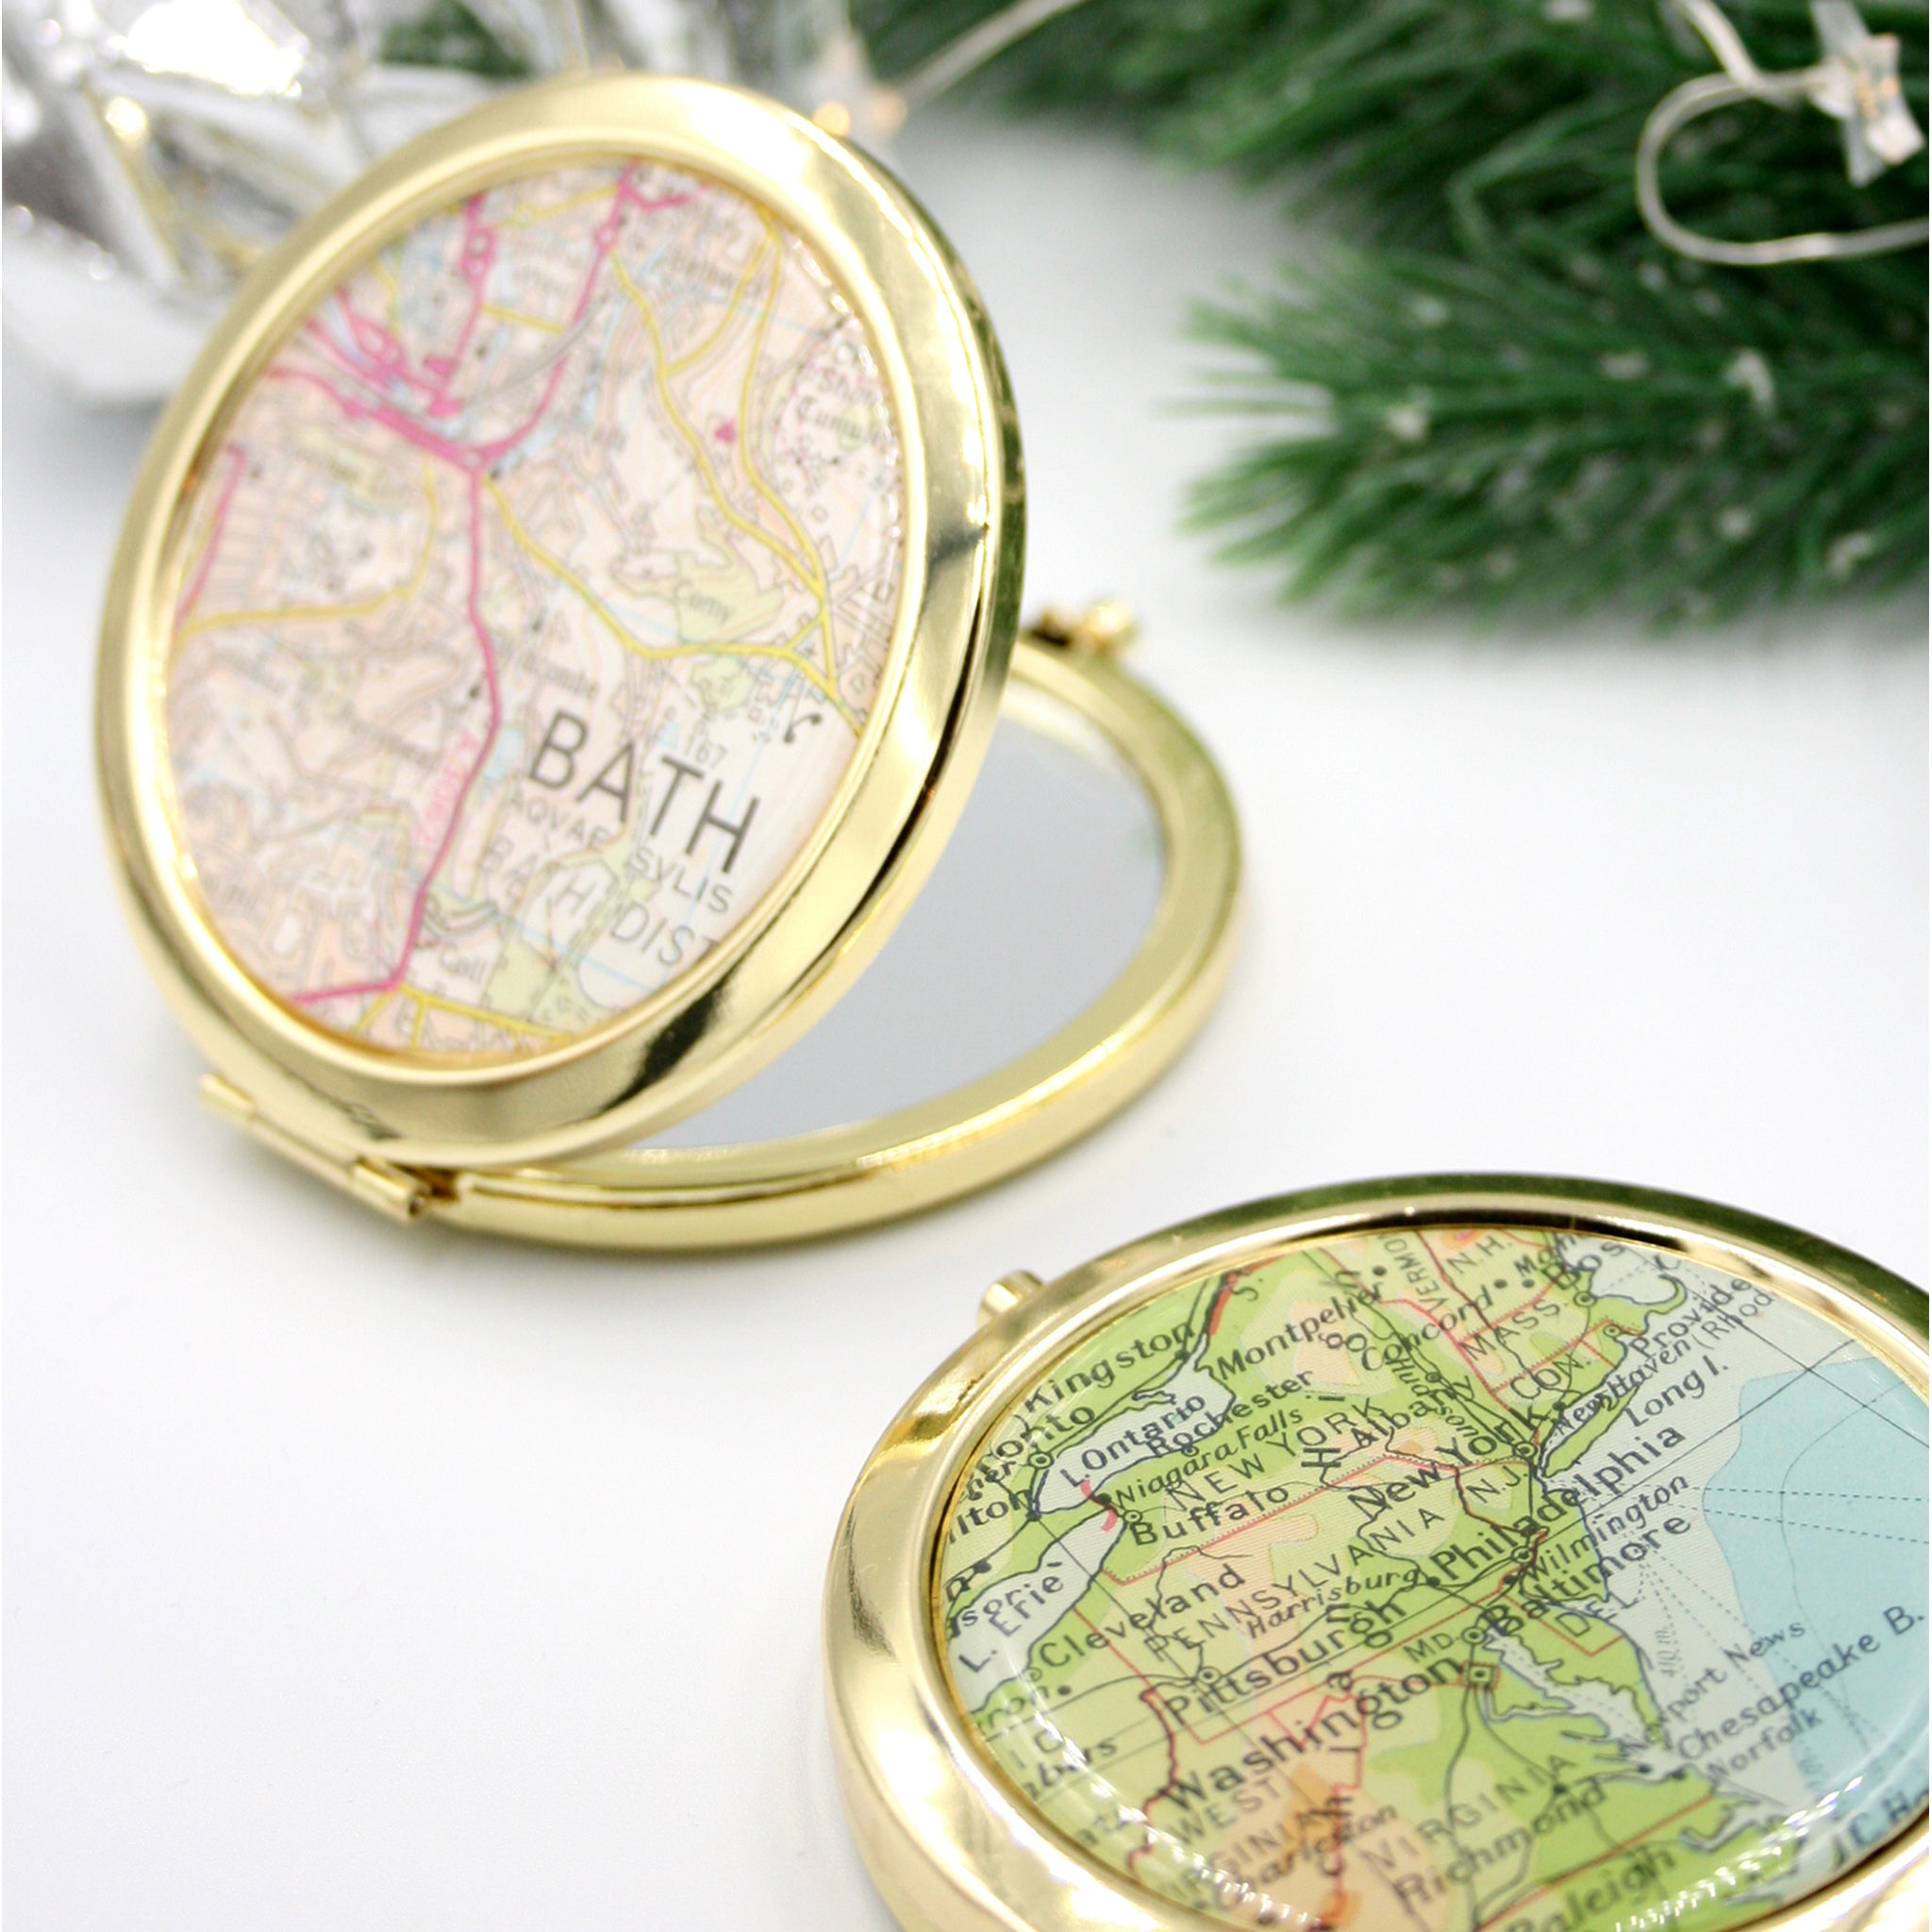 Personalised Compact Mirror in gold color featuring map of Bristol and New York